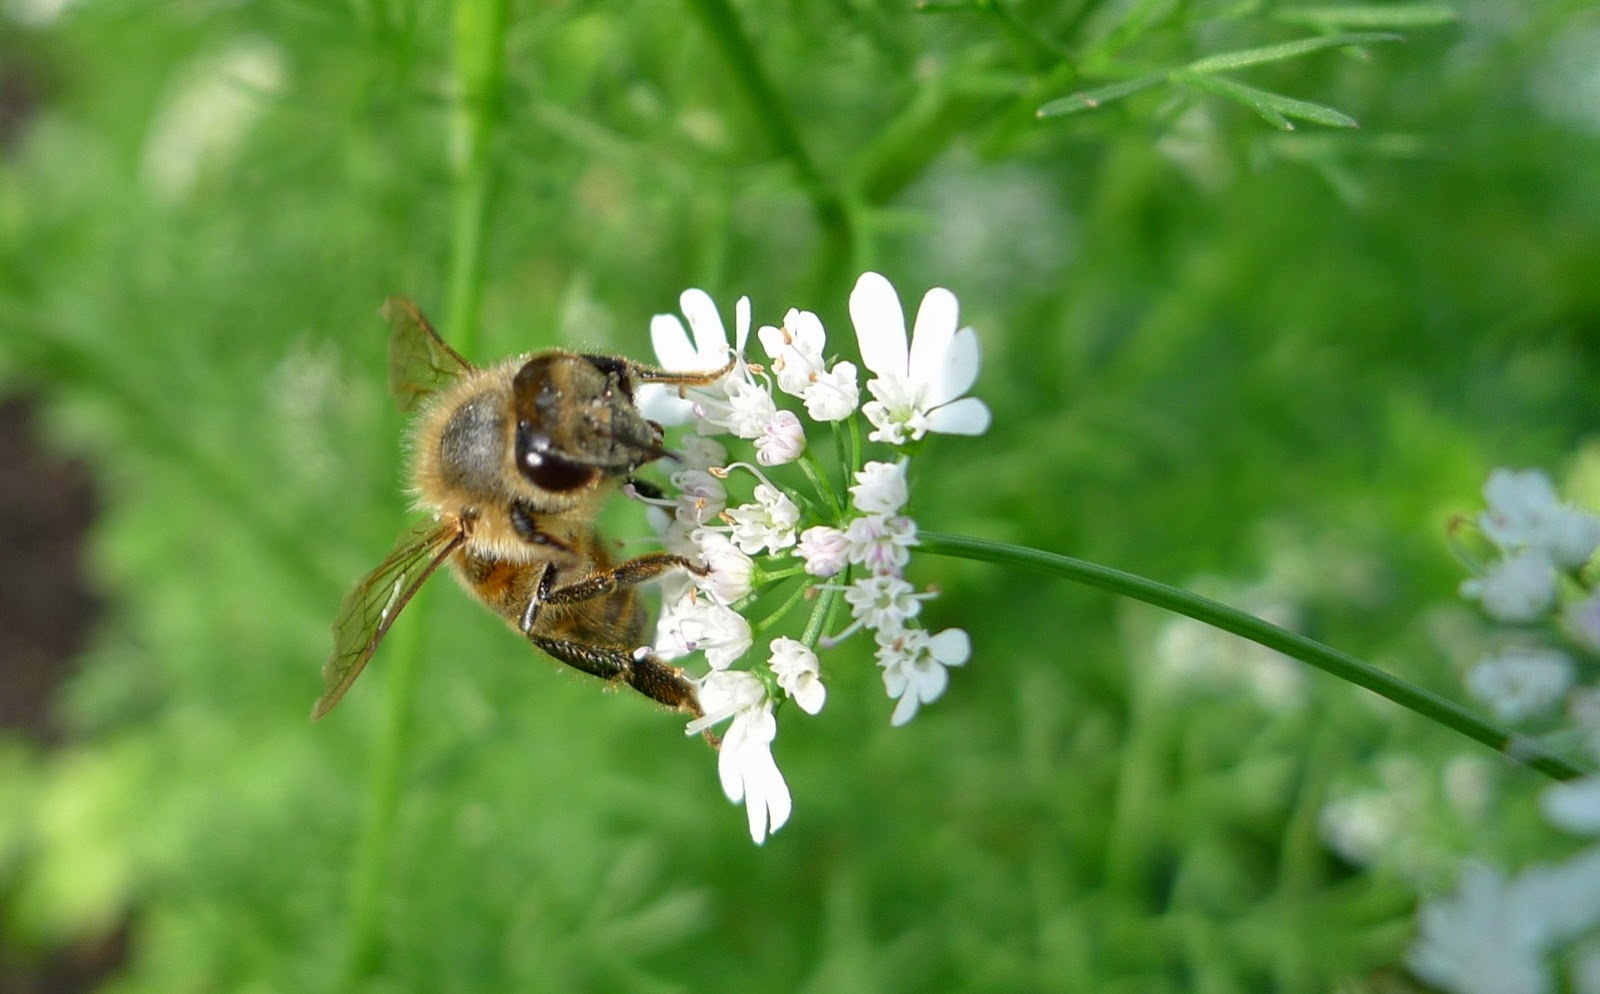 Honey Bee on Cilantro Flower, pollinator, Urban Farming